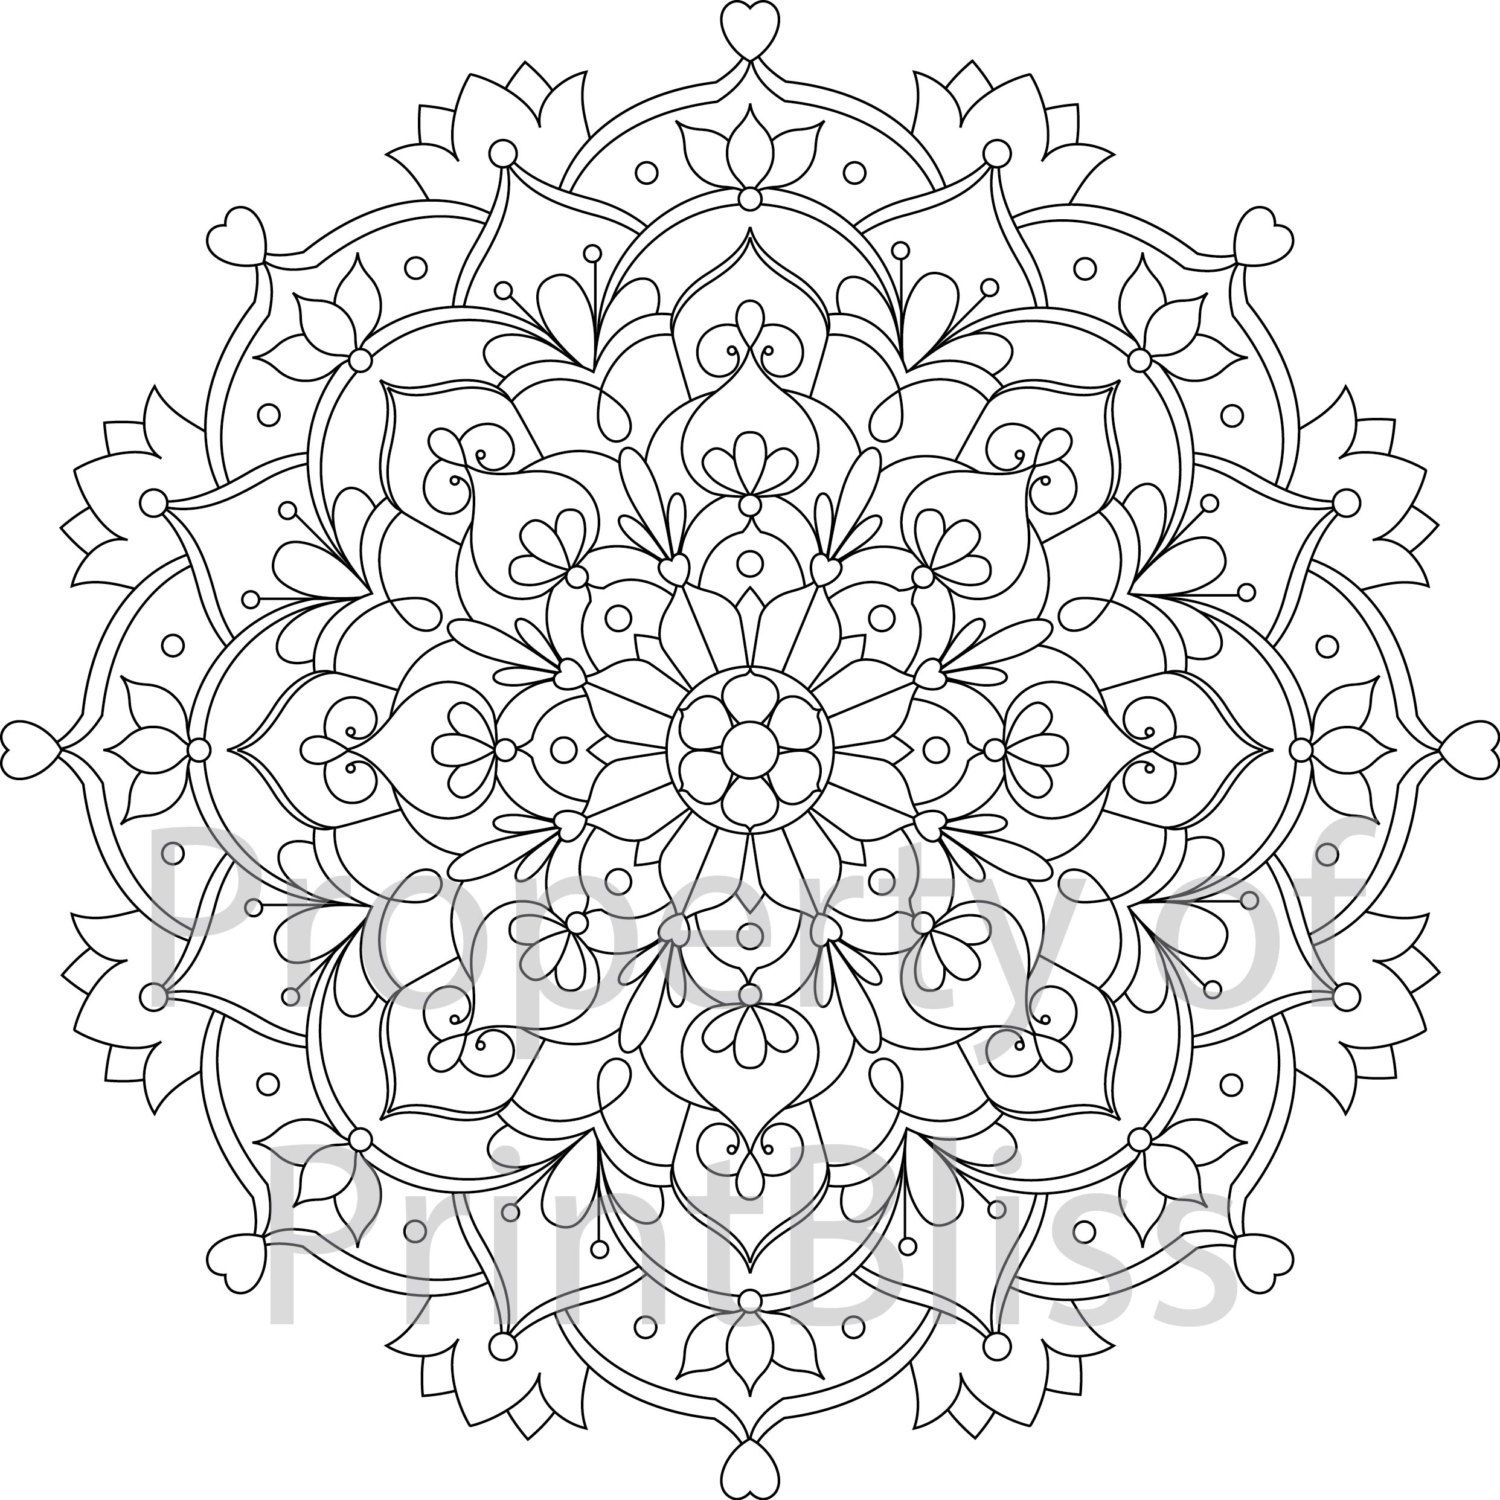 29 flower mandala printable coloring page by printbliss on etsy art my work mandala. Black Bedroom Furniture Sets. Home Design Ideas